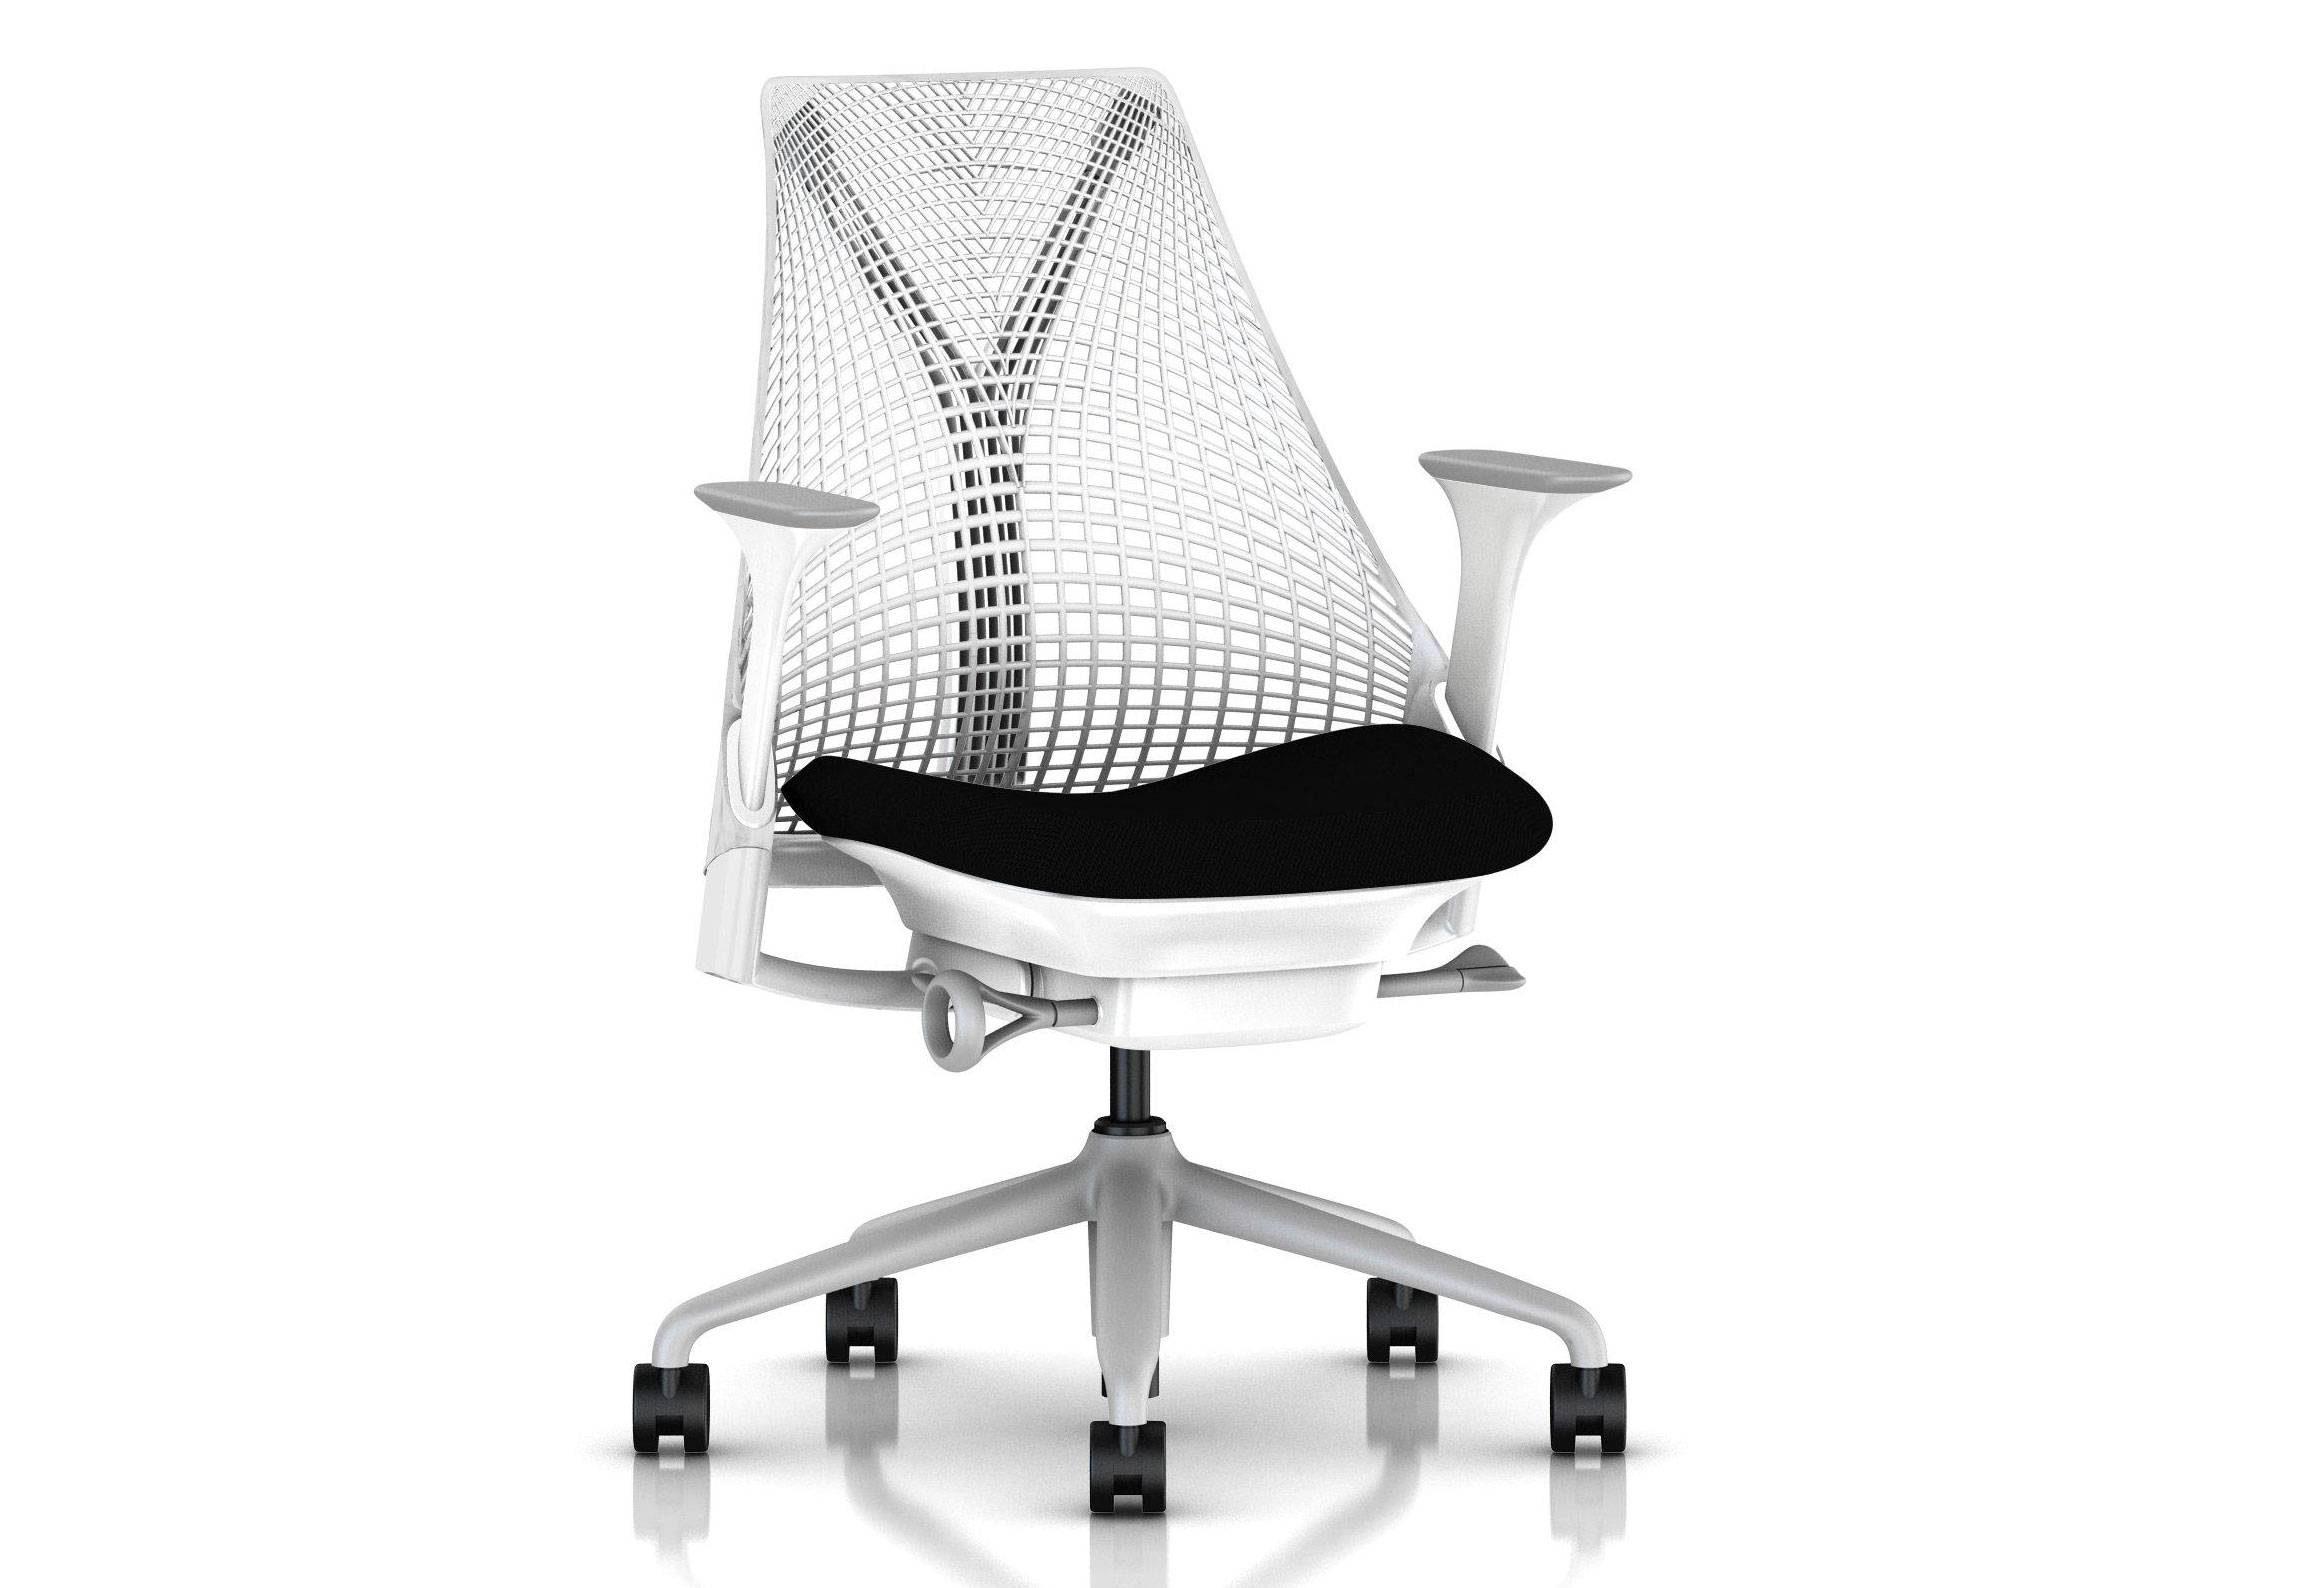 Best office chairs: Herman Miller Sayl office chair